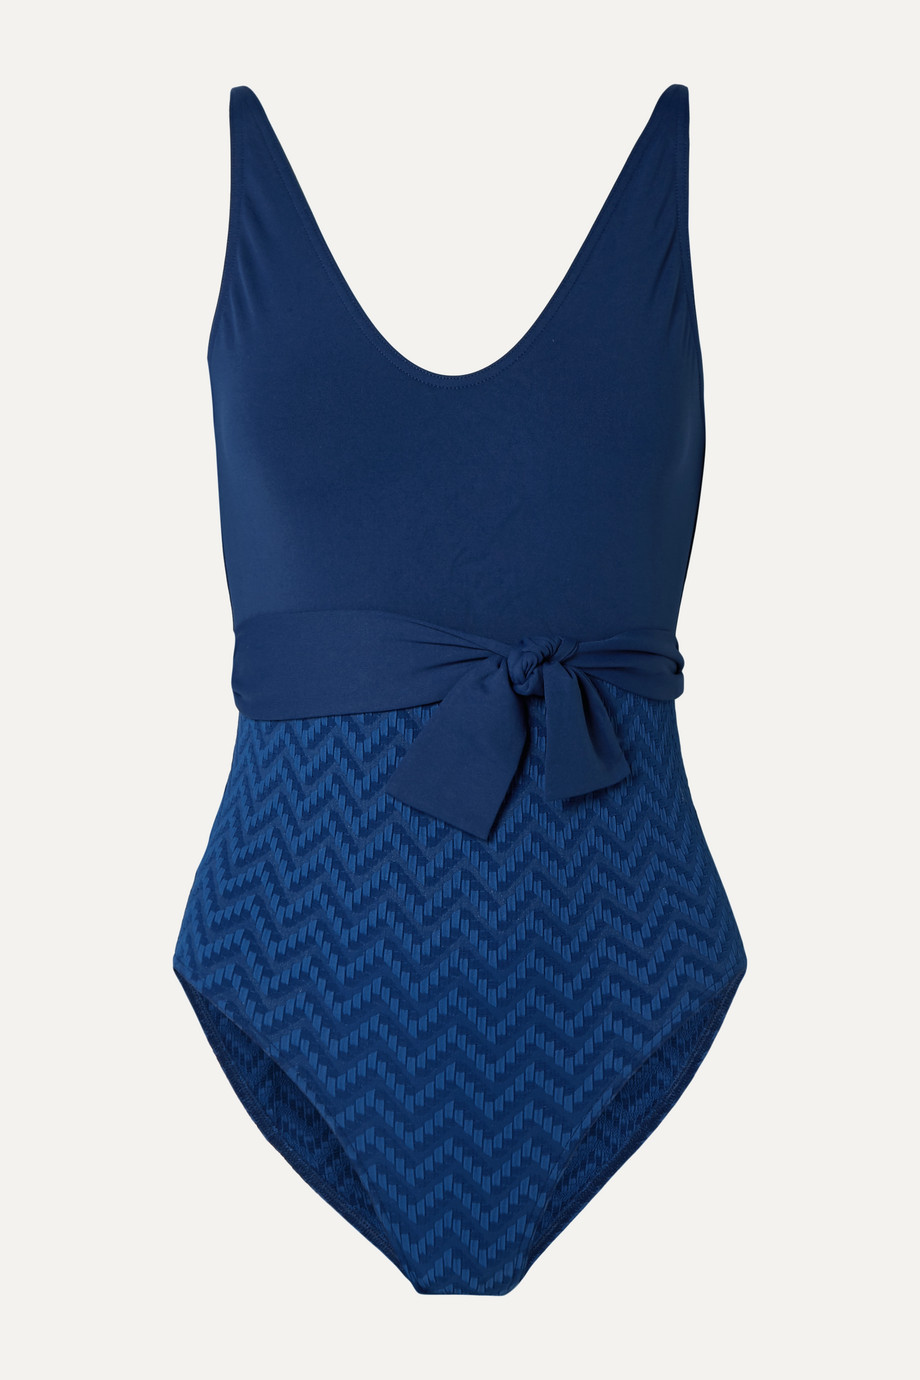 Eres Belted paneled seersucker swimsuit